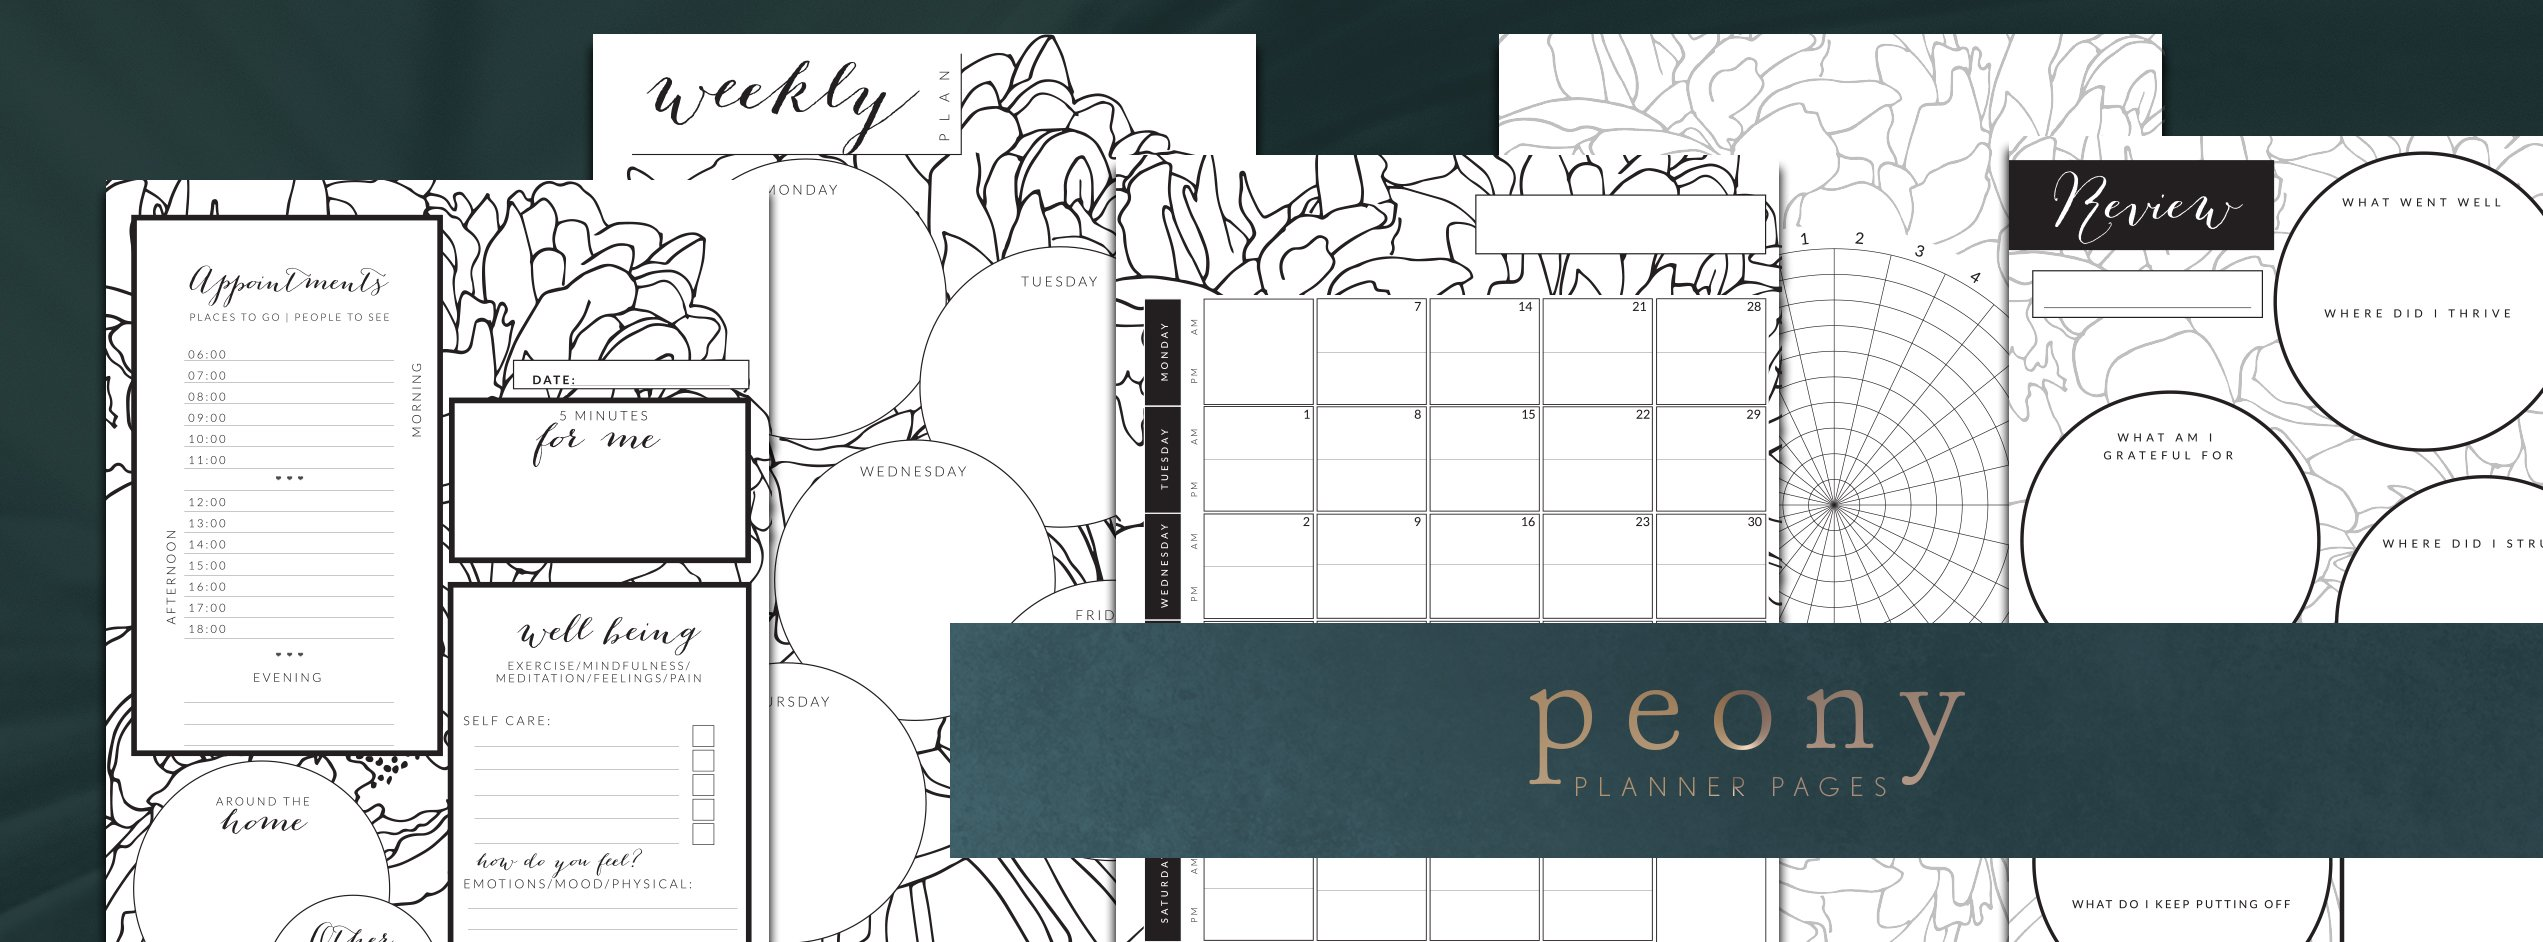 pocketsfulloftime peony planner pages